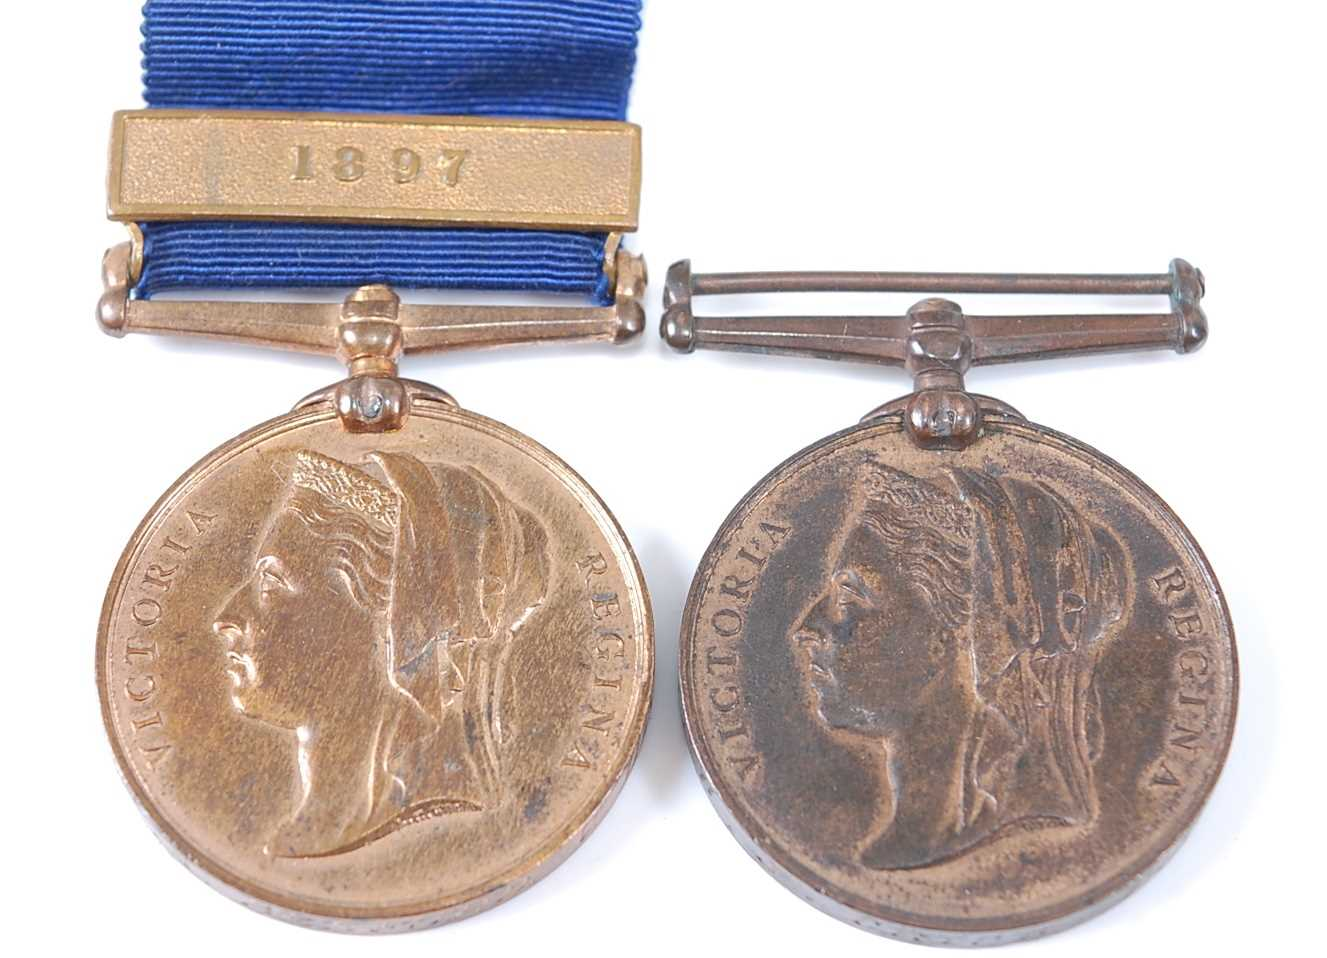 An 1887 Metropolitan Police medal with 1897 clasp, naming P.C. A. BEDFORD V. DIVN, together with one